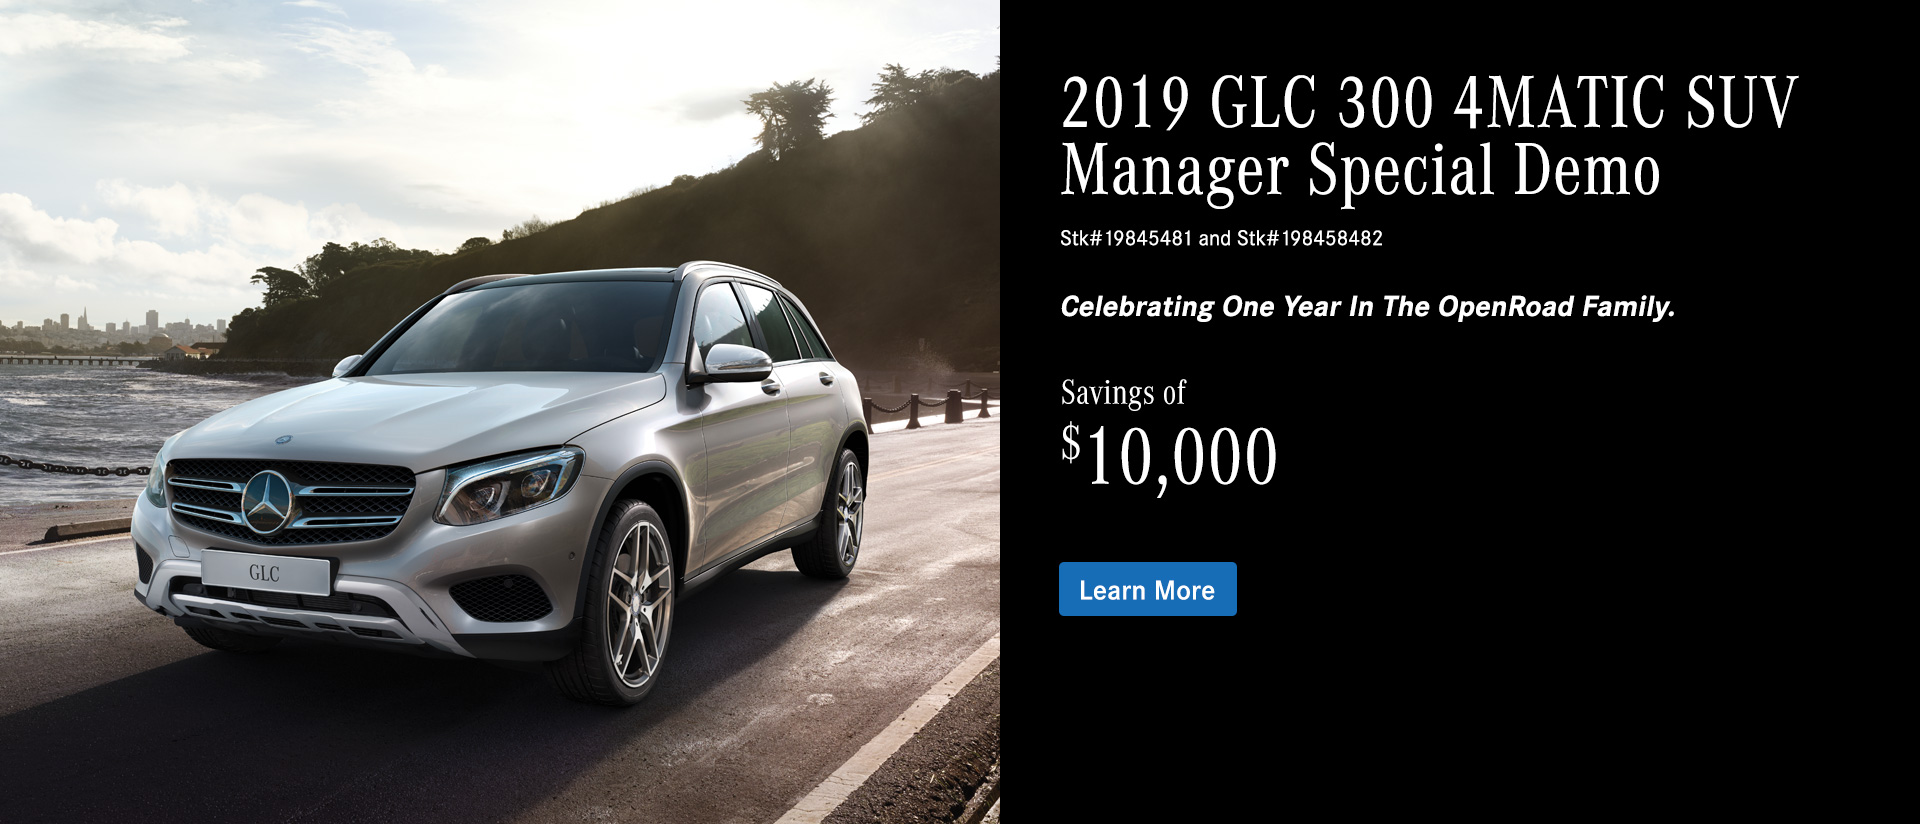 2019 GLC 300 Manager Special Demo in Mercedes Benz Surrey